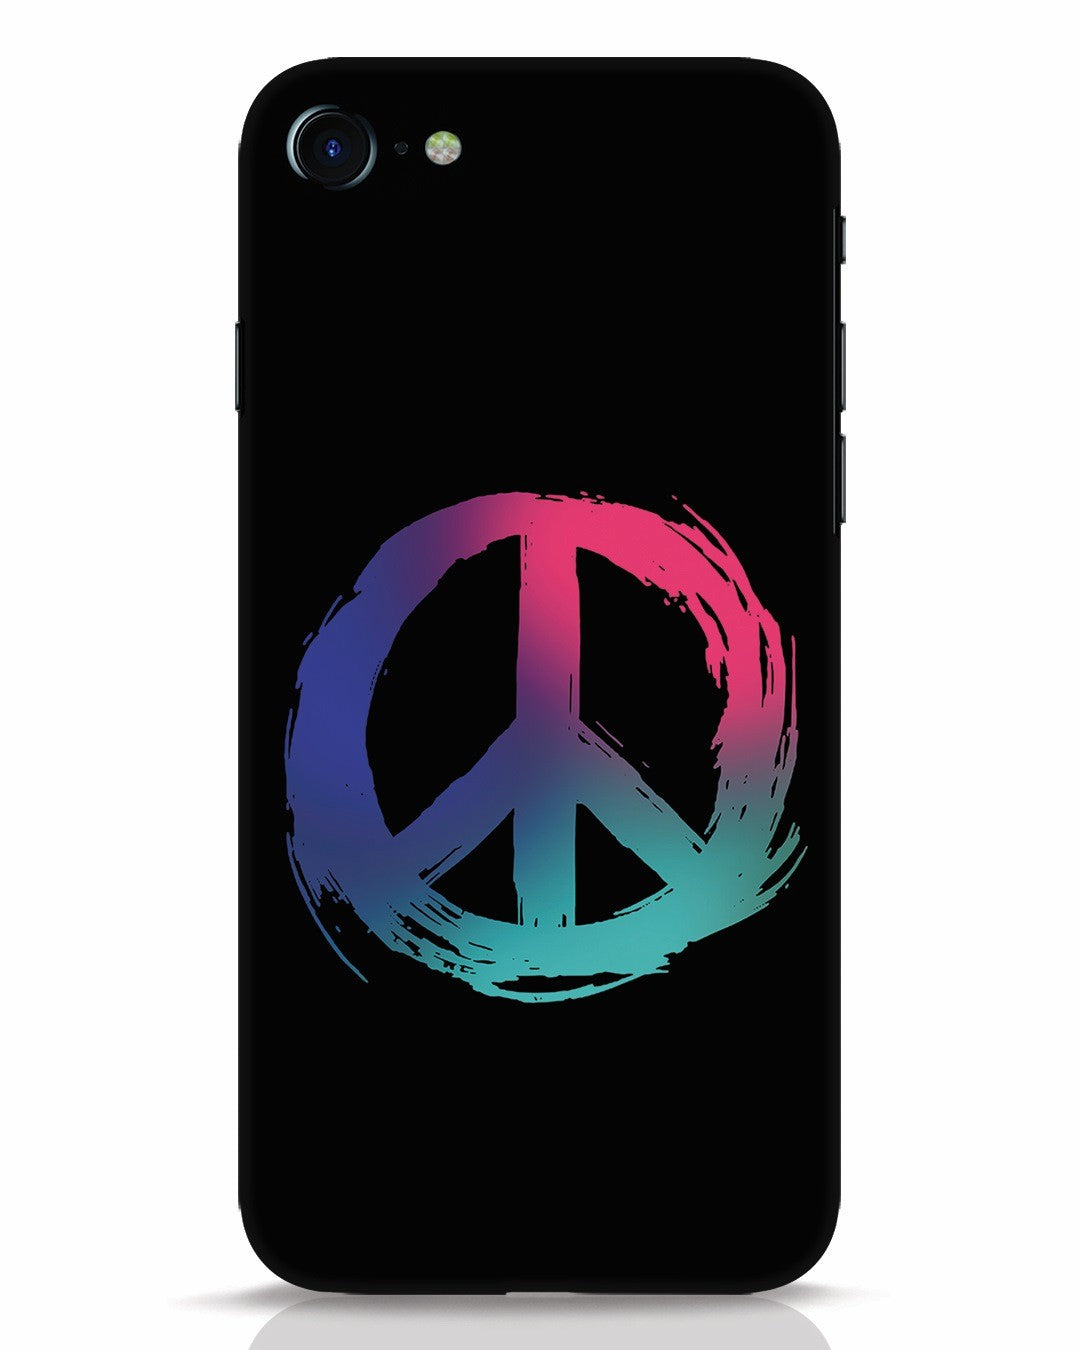 5a259b234 Colors Of Peace iPhone 7 Mobile Cover – Canishub Demo